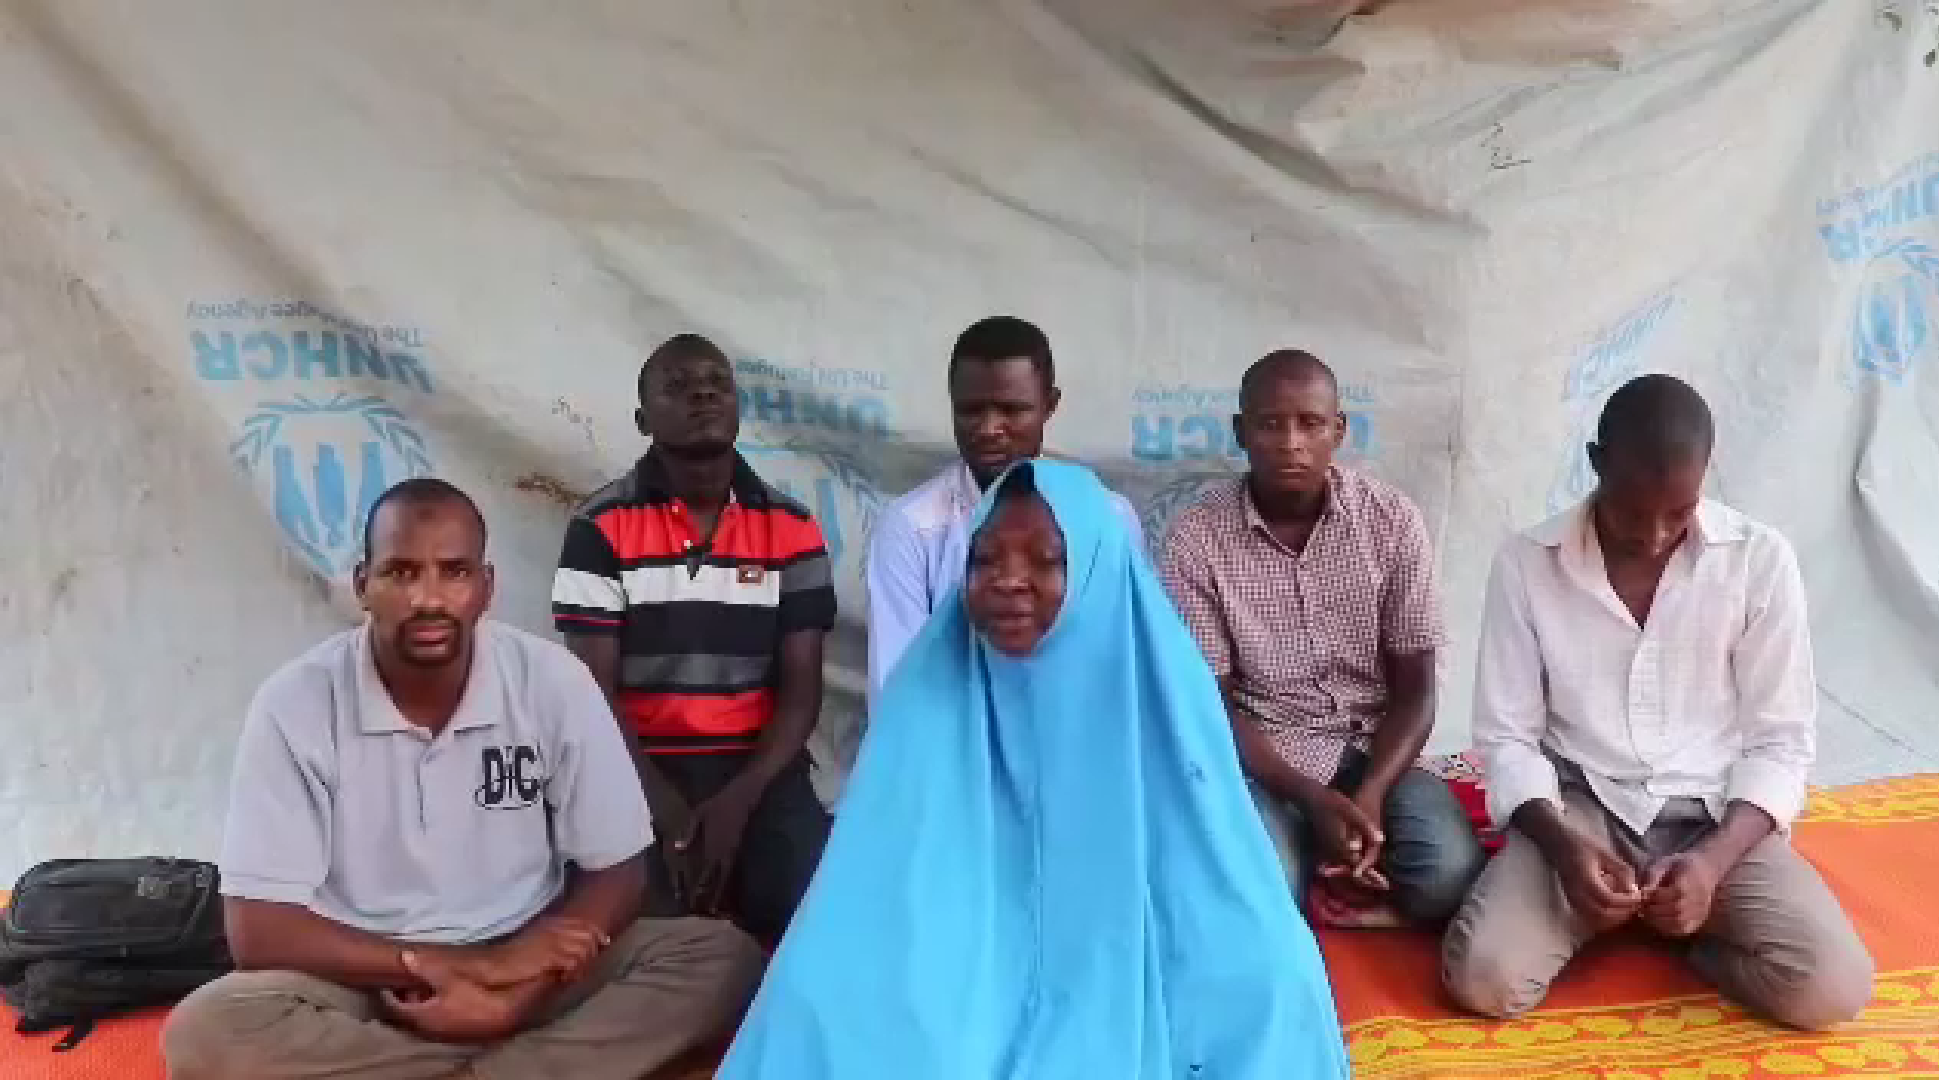 Boko Haram Releases Video Of Kidnapped Aid Workers